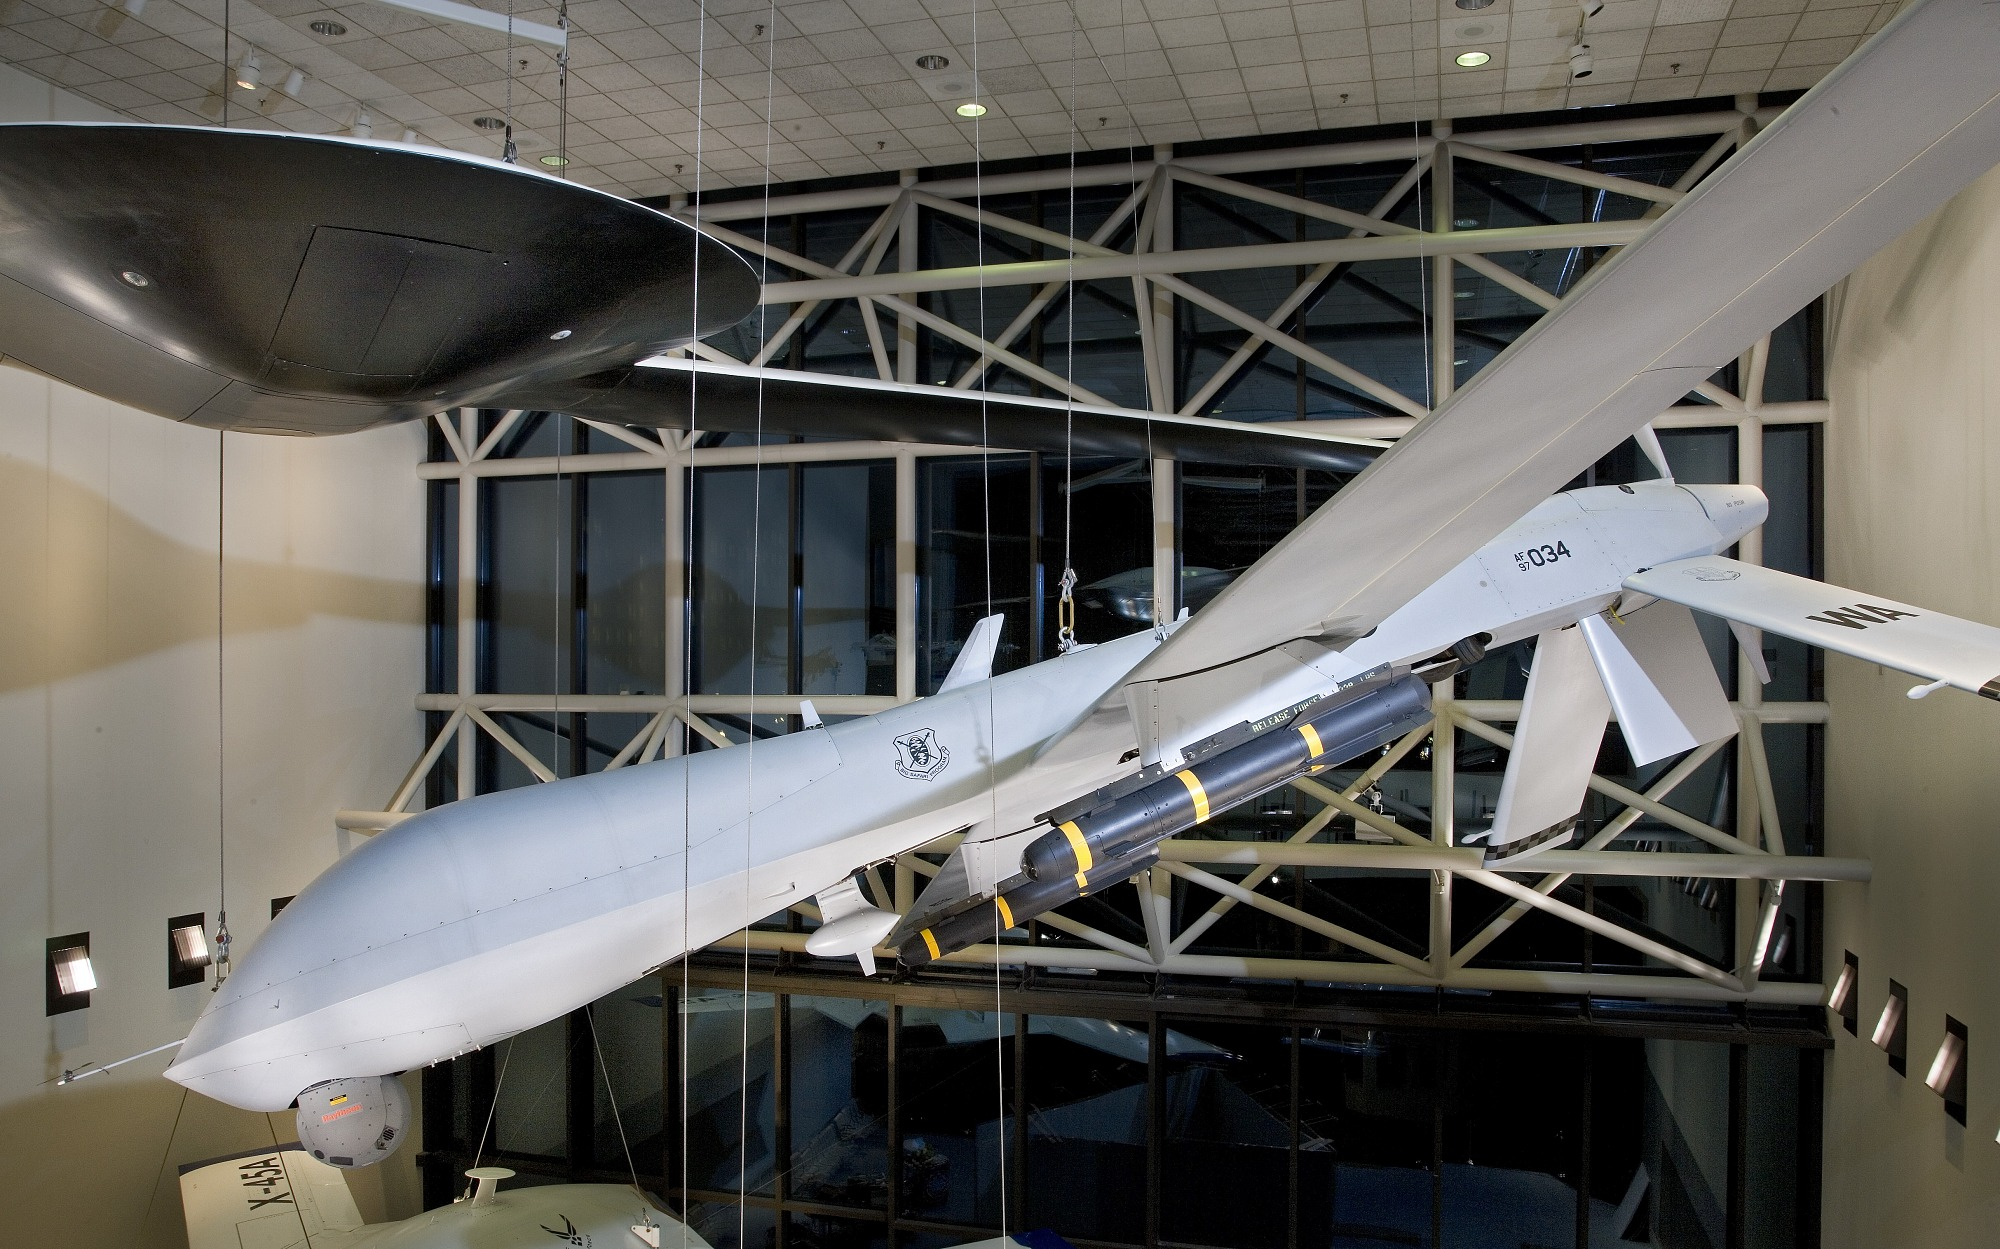 Image of : General Atomics Aeronautical Systems, Inc., MQ-1L Predator A